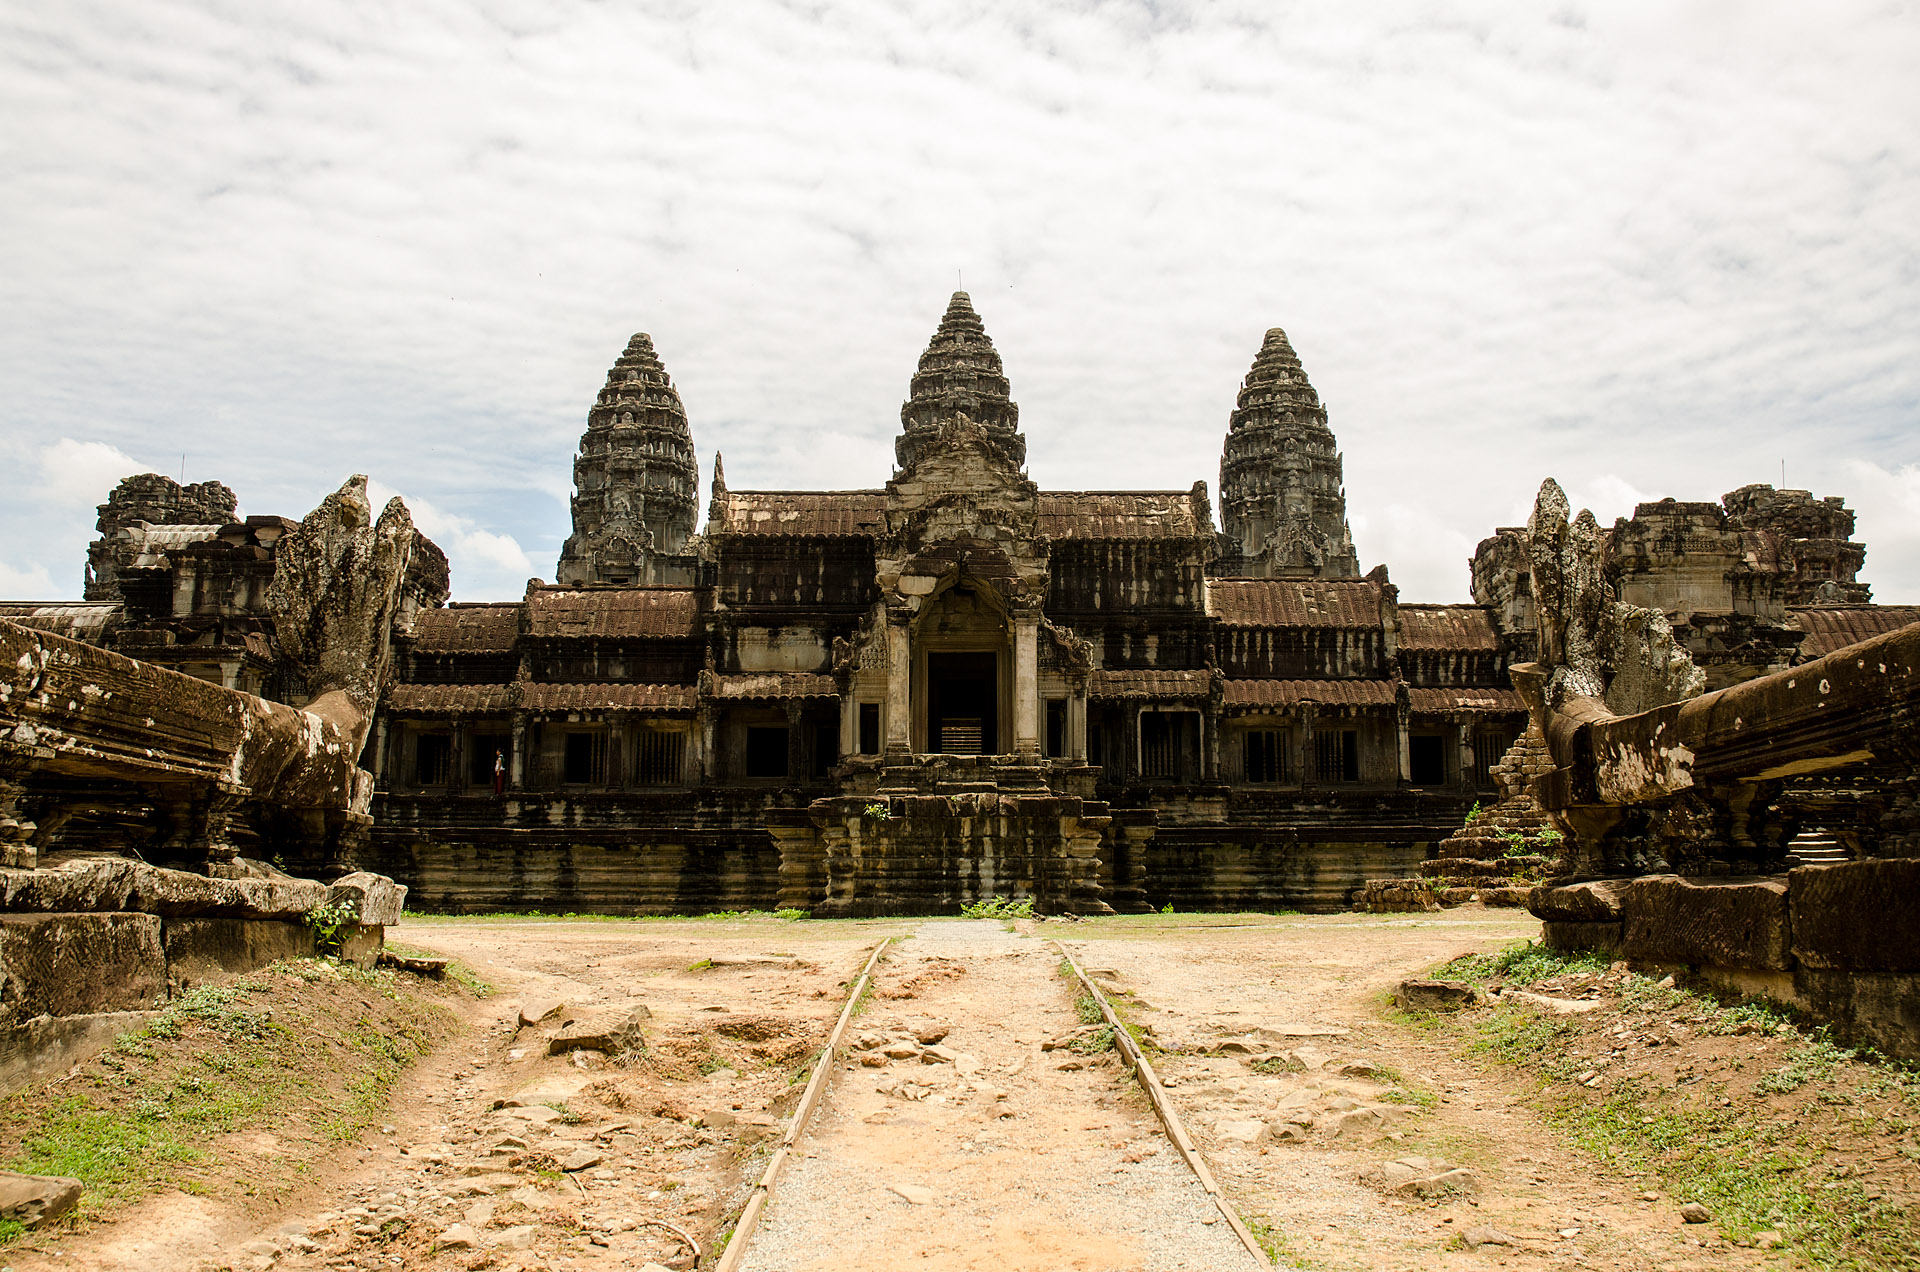 Angkor Wat from east gate